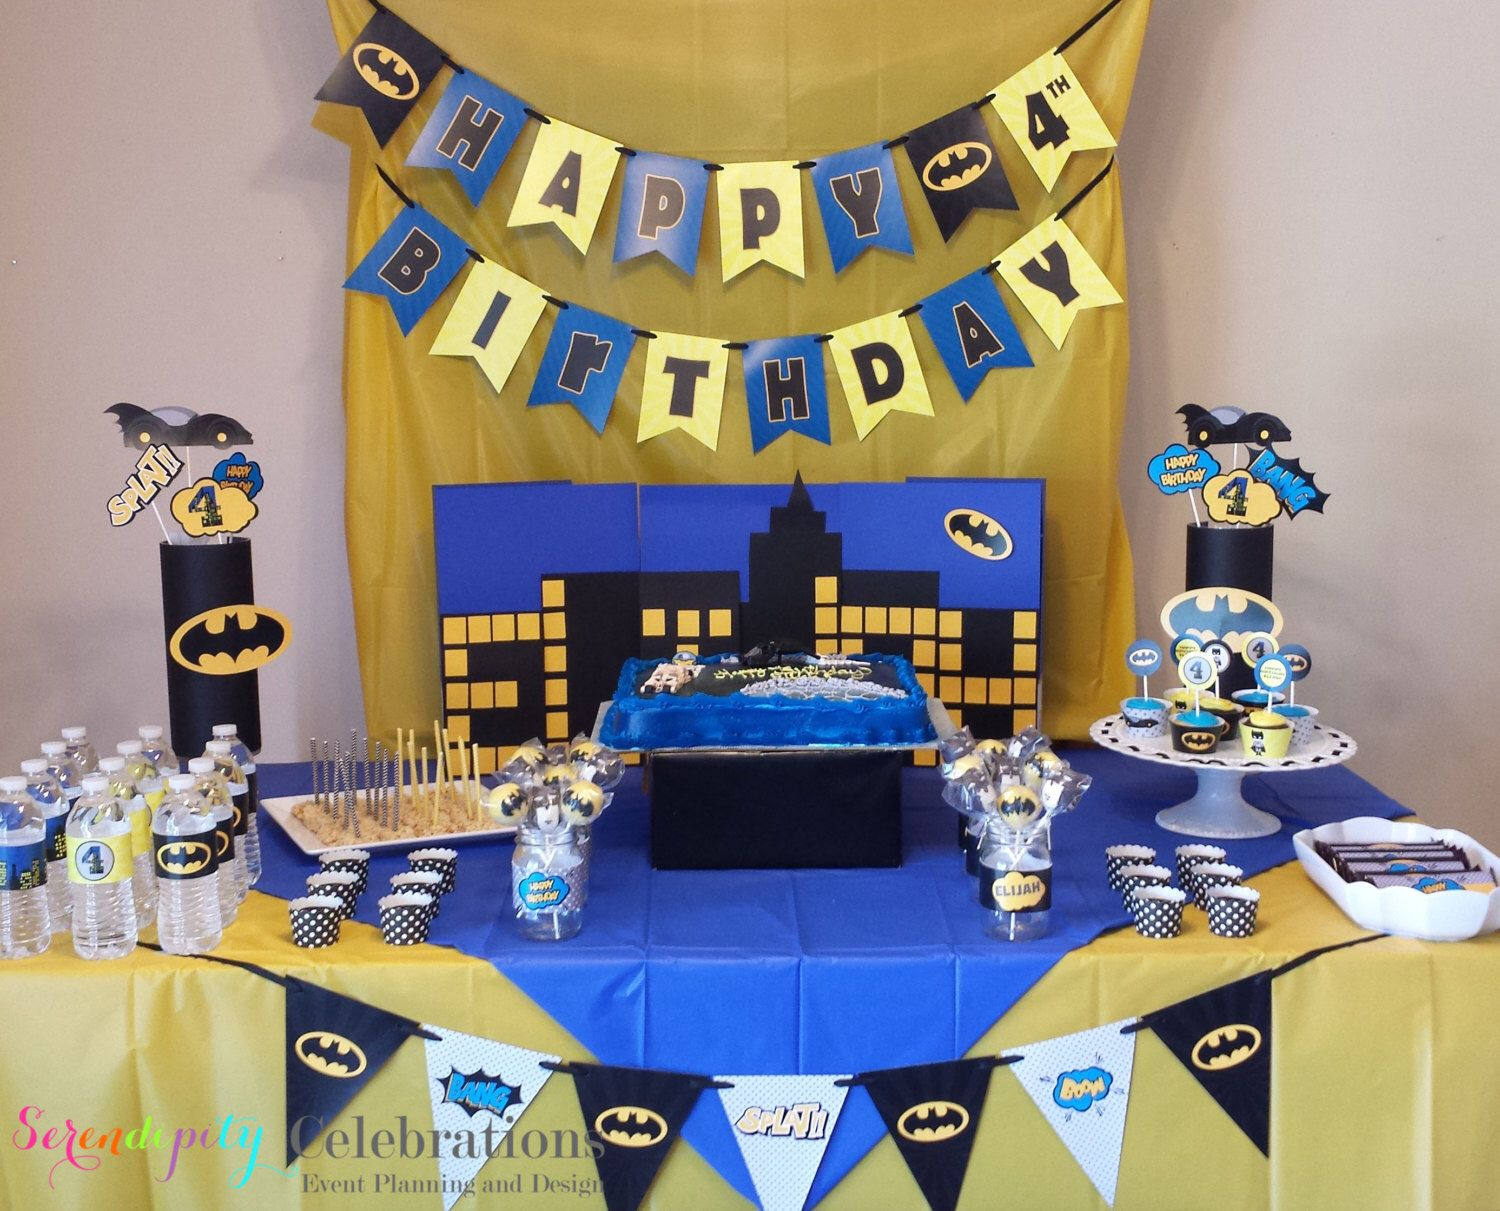 DIY Printable Mini Party Package -Superhero Birthday -Baby Shower -Banner Party Sign Favor Tags Water Bottle Labels Cupcake Toppers -Bat Man by SerendipityPrintable on Etsy https://www.etsy.com/listing/176792086/diy-printable-mini-party-package